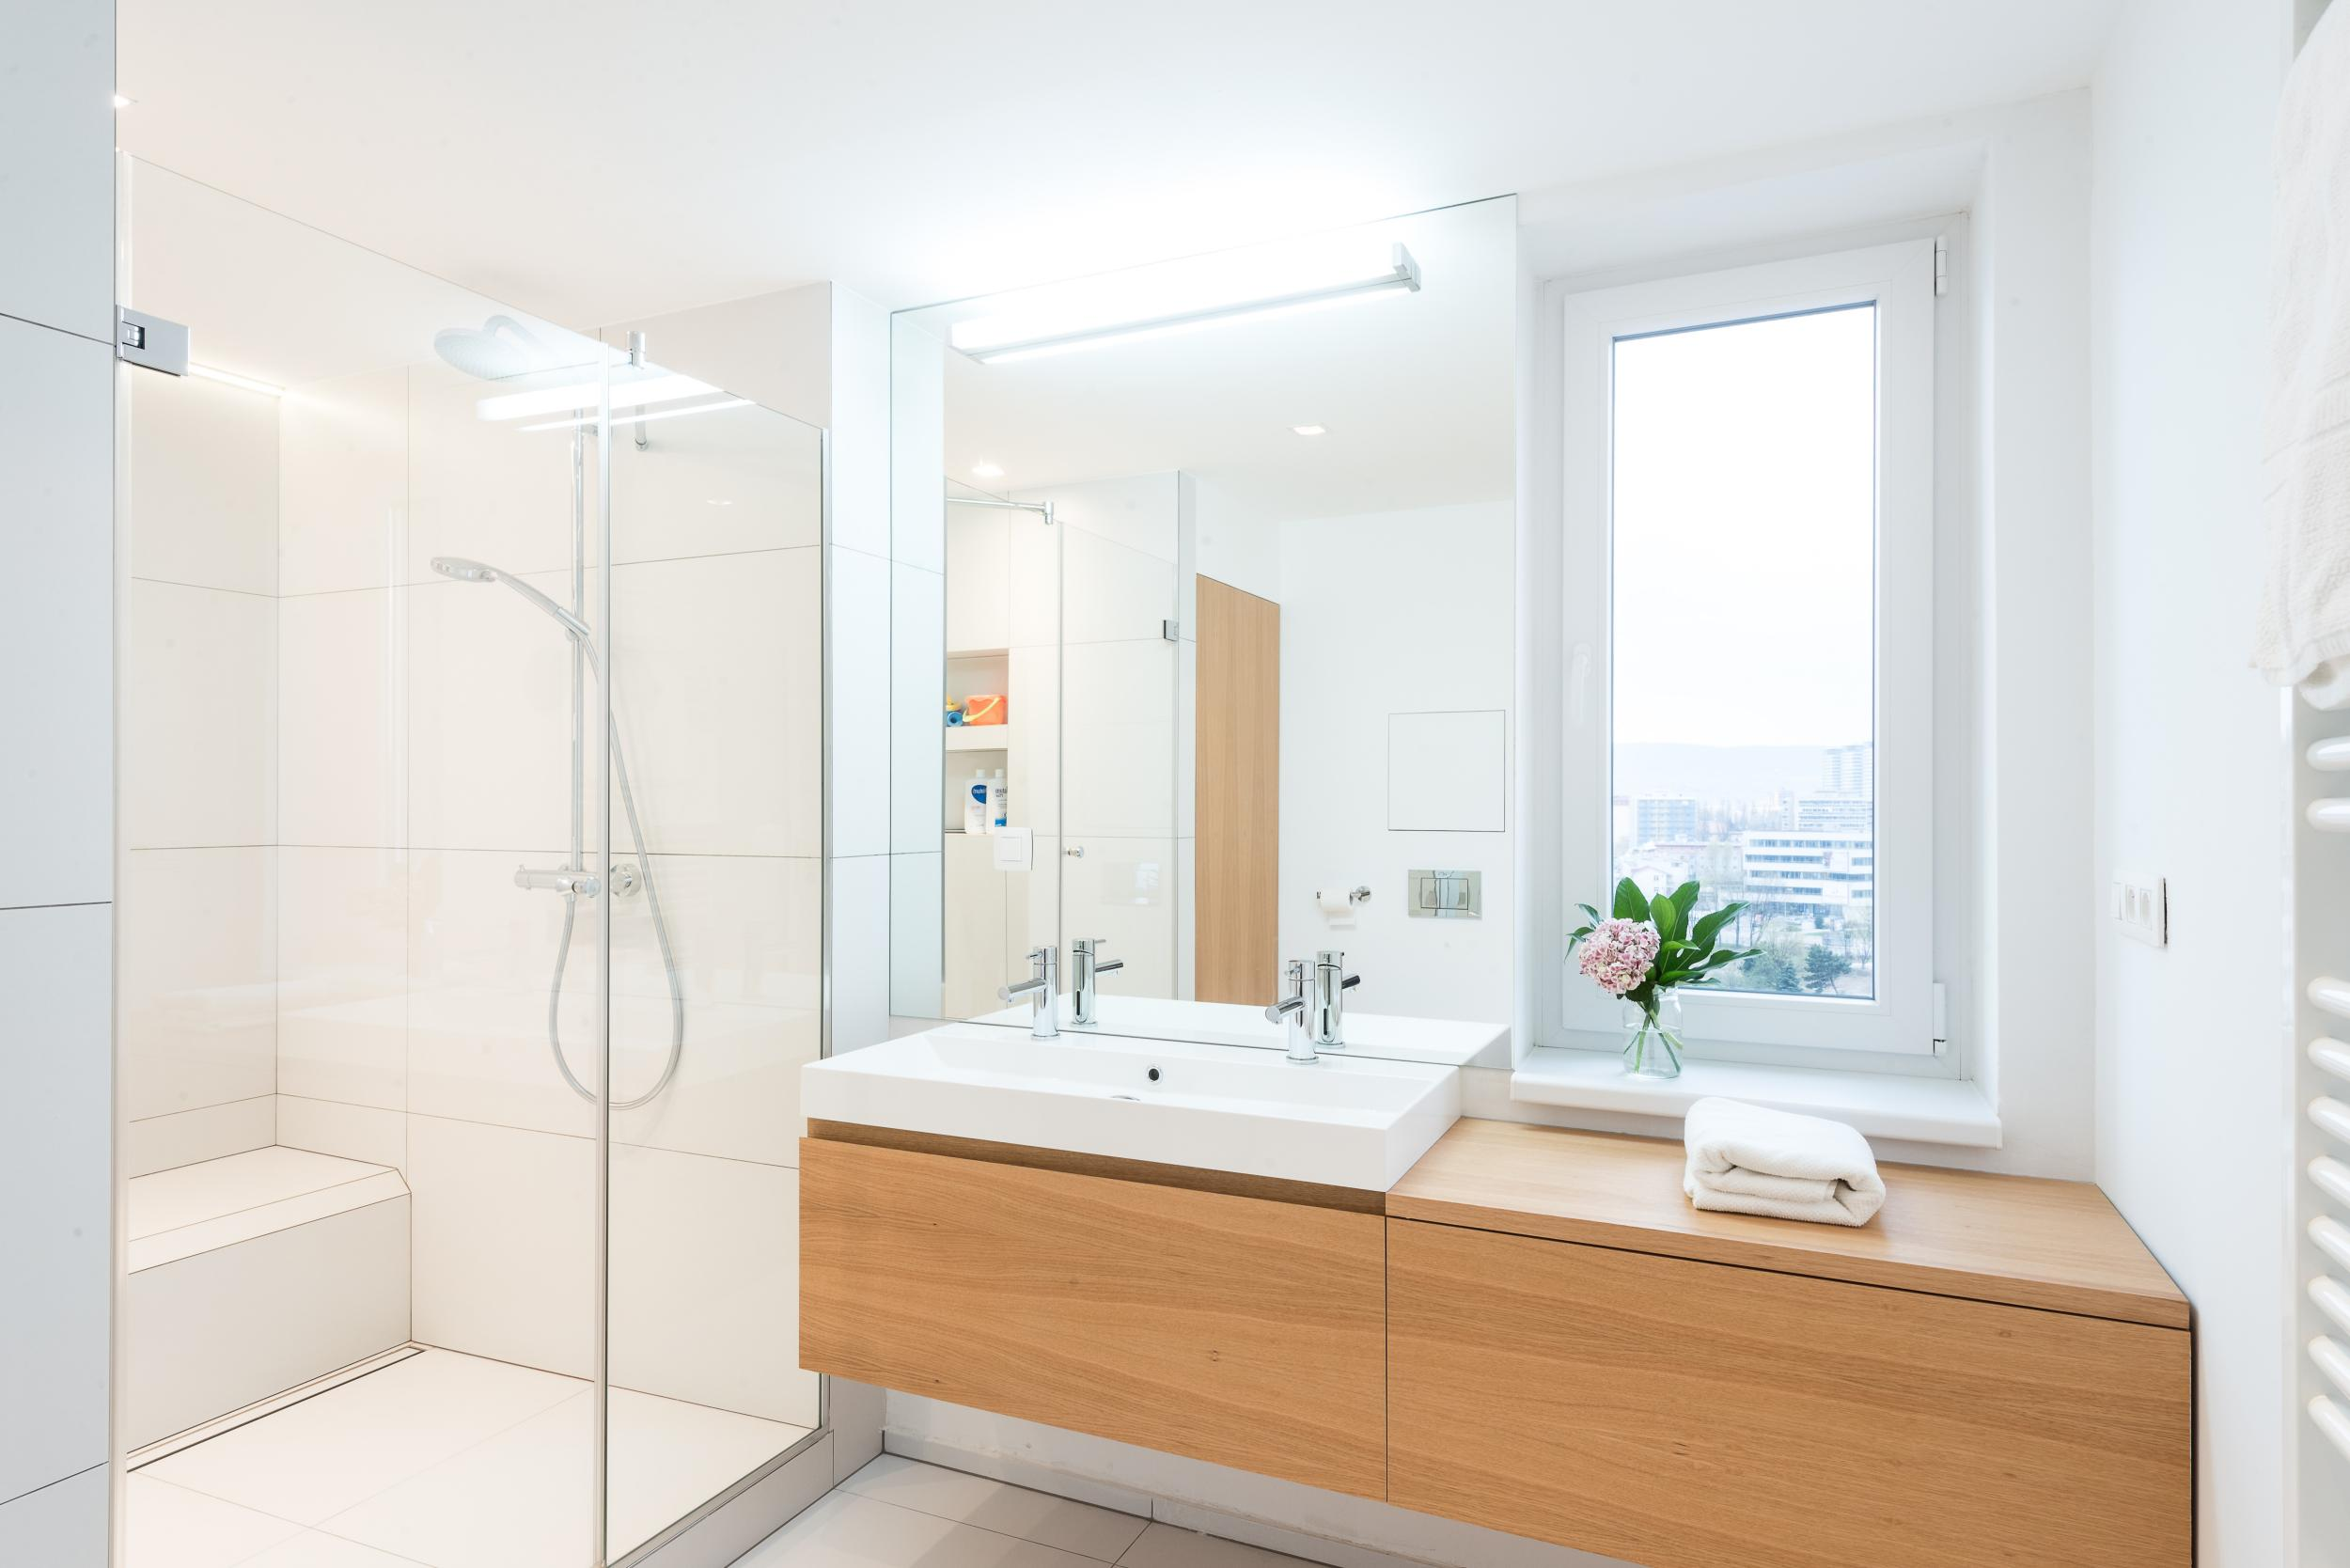 Bathrooms rules architects for Bathroom interior design rules